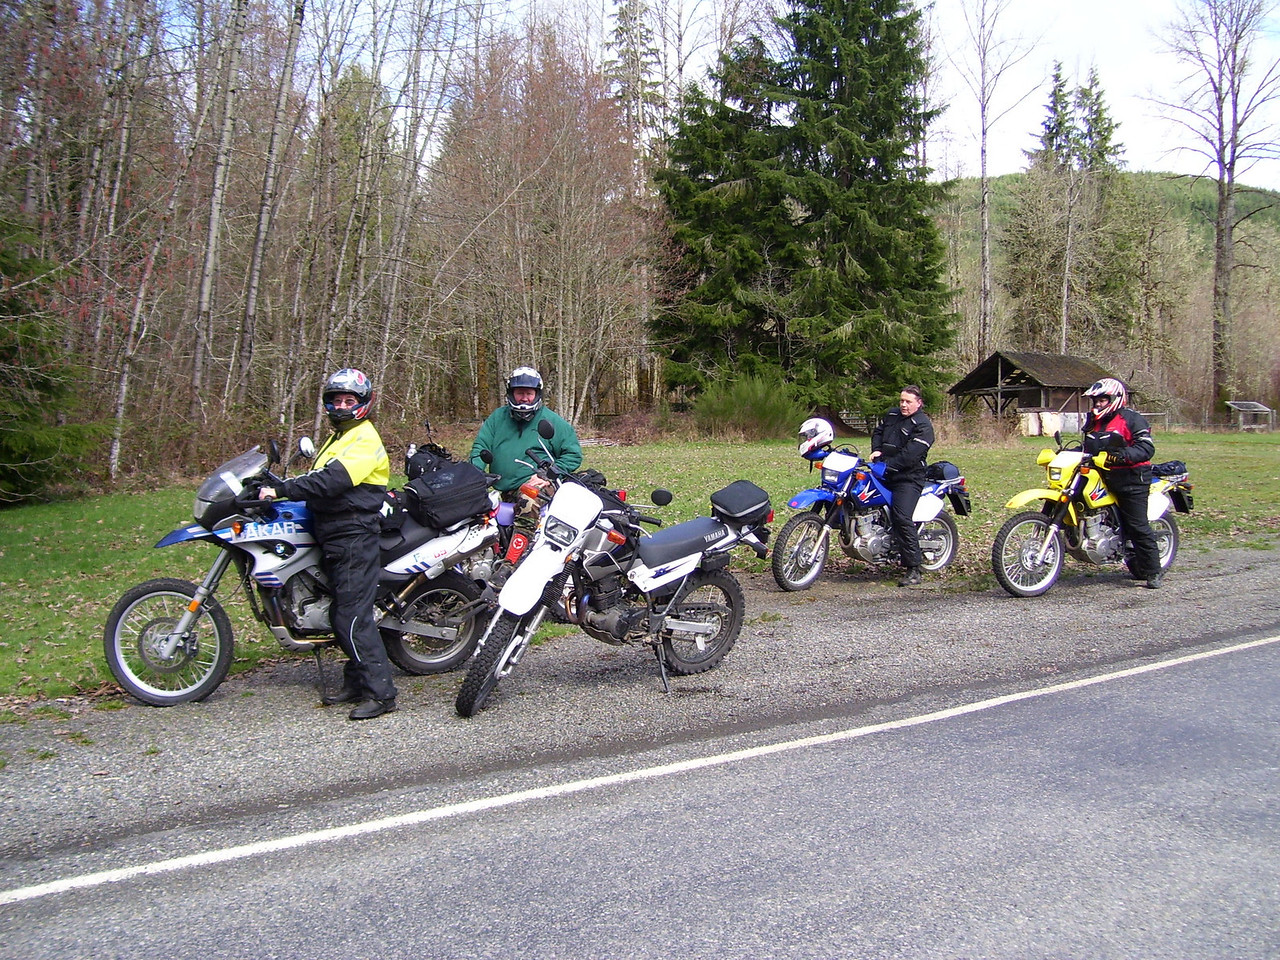 Sunday's ride had just five of us: Sylvia, Paul, Marty, Cheryl and Lan.